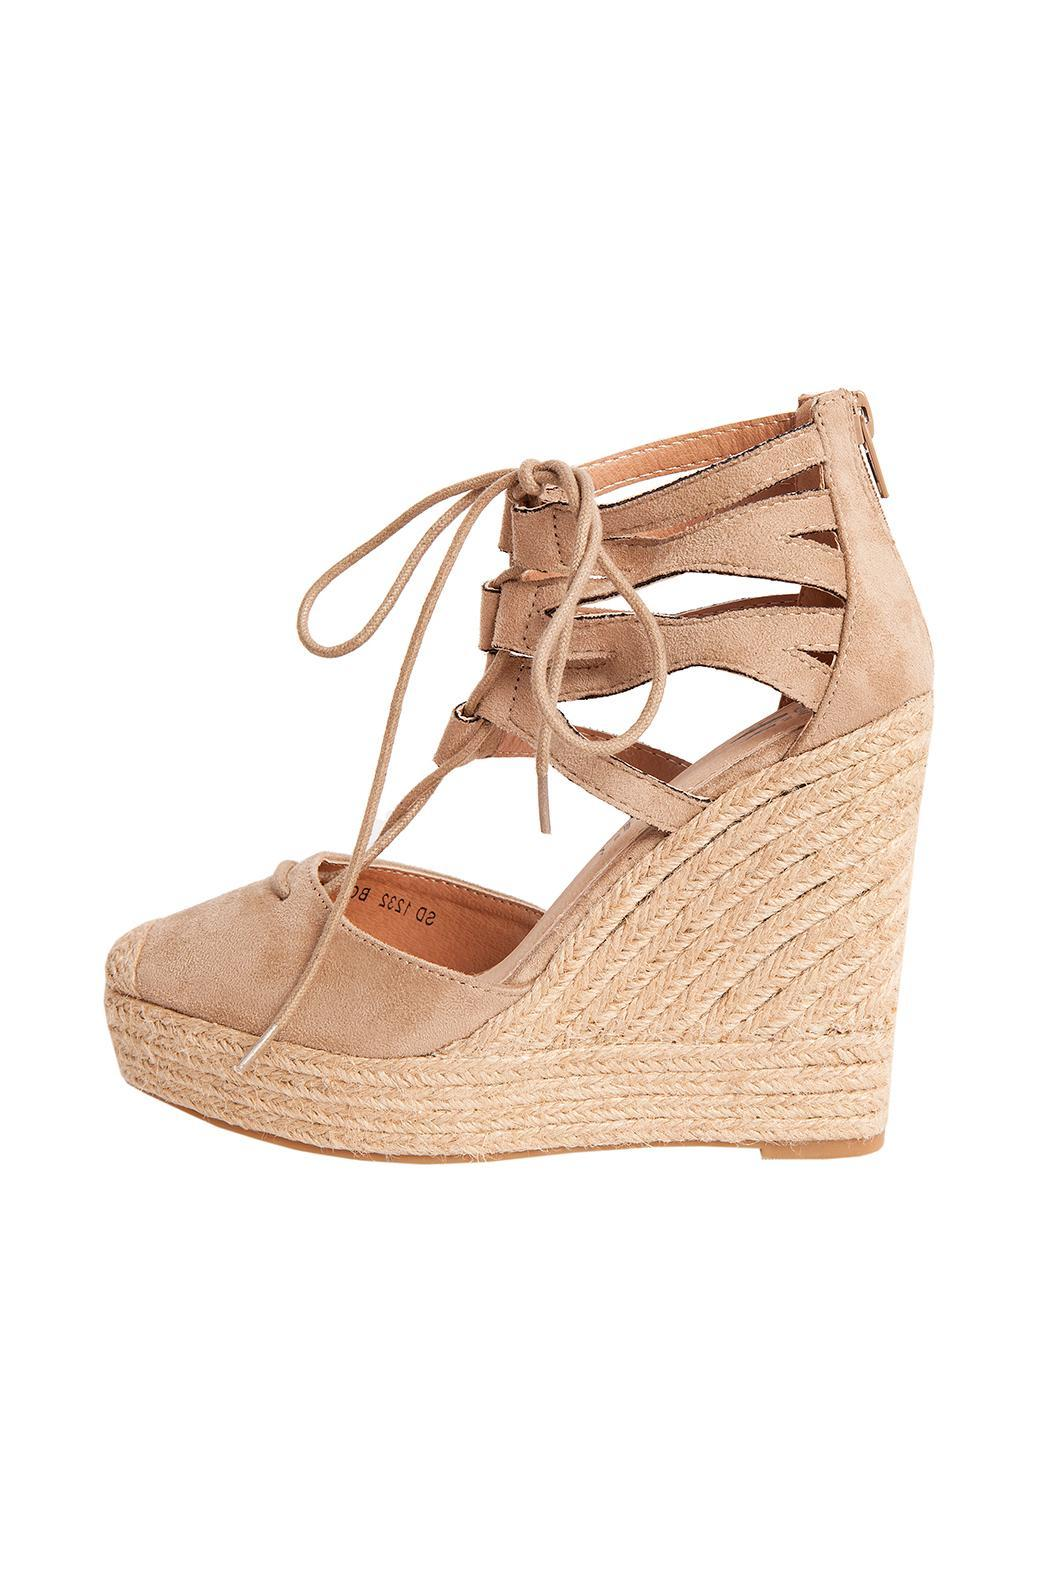 009e14bc6b5e Vanessa Wu High Heel Sandals from Netherlands by FashionFarm ...